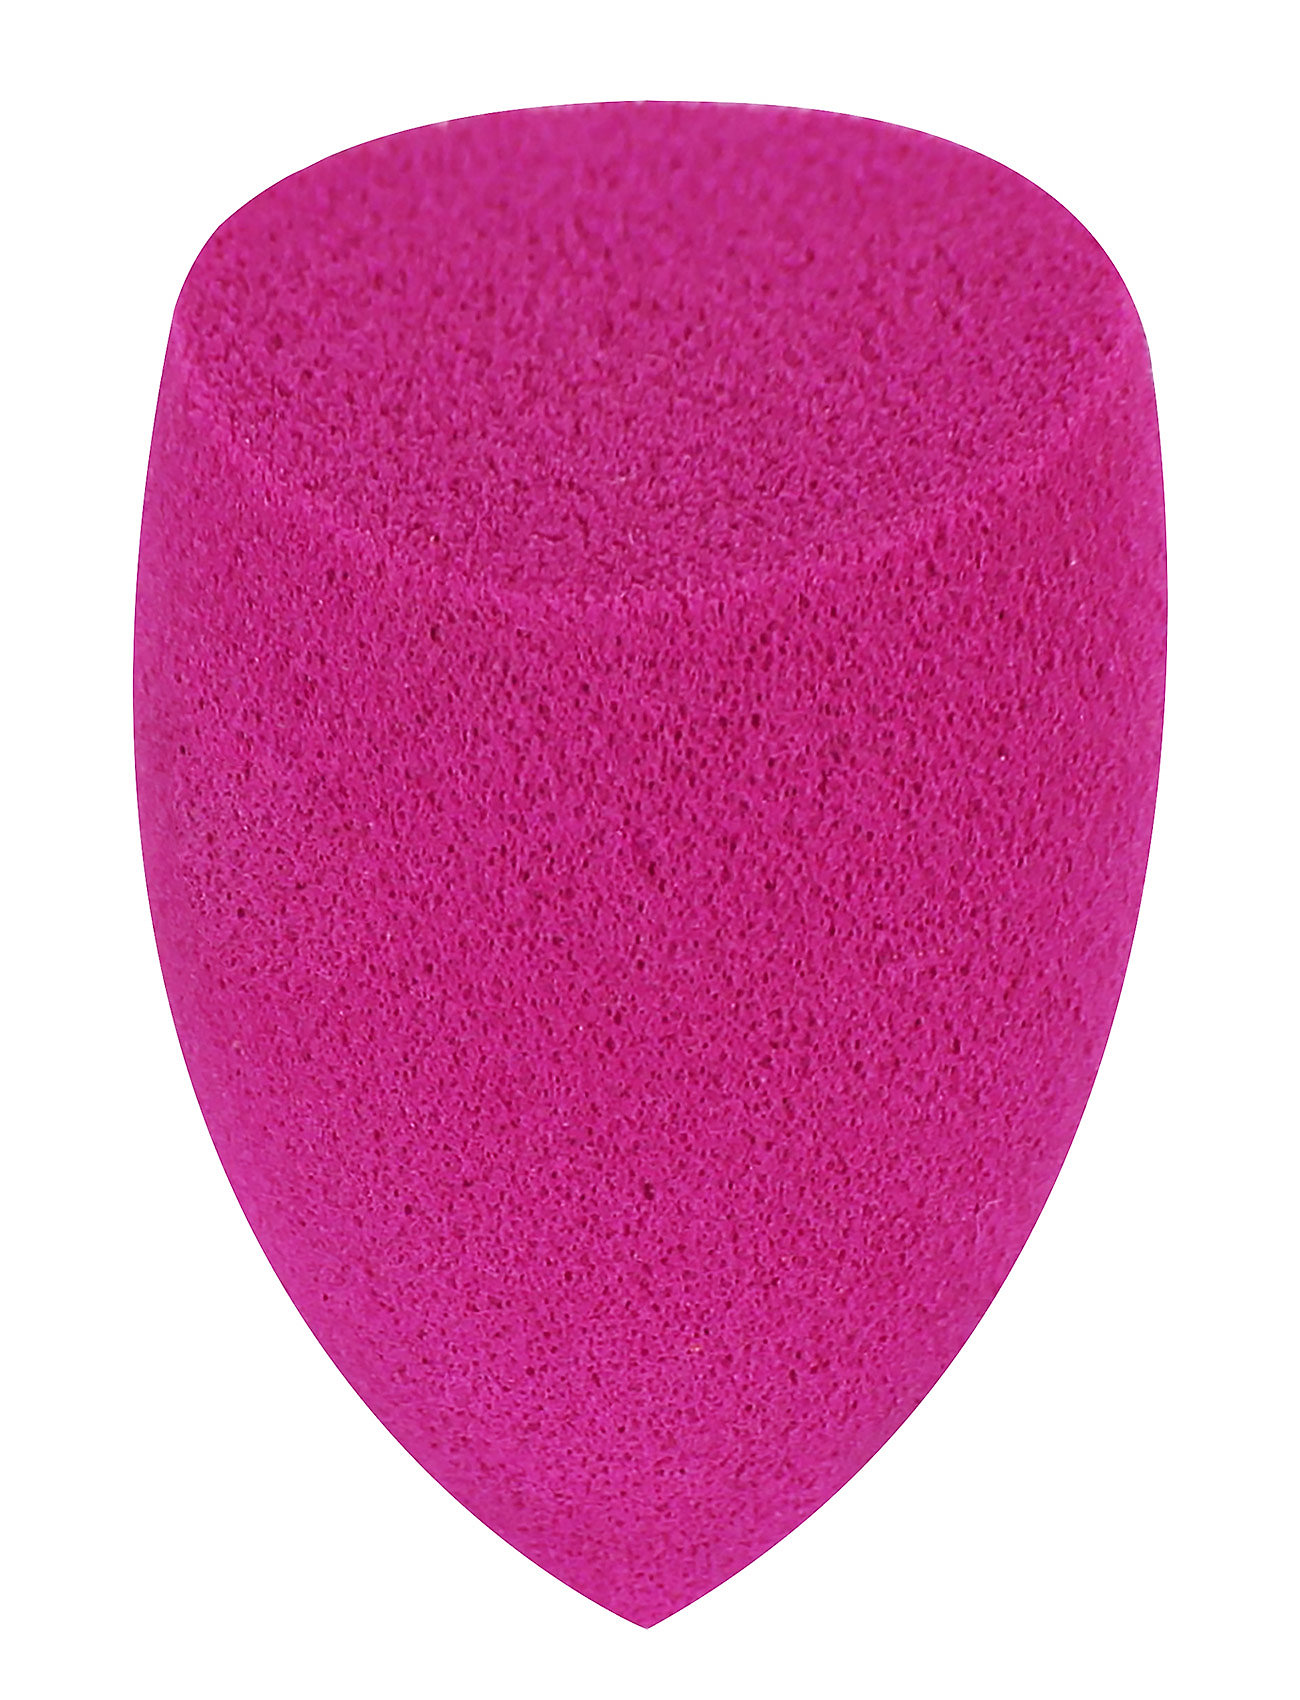 Real Techniques Real Techniques Miracle Finish Sponge - PINK